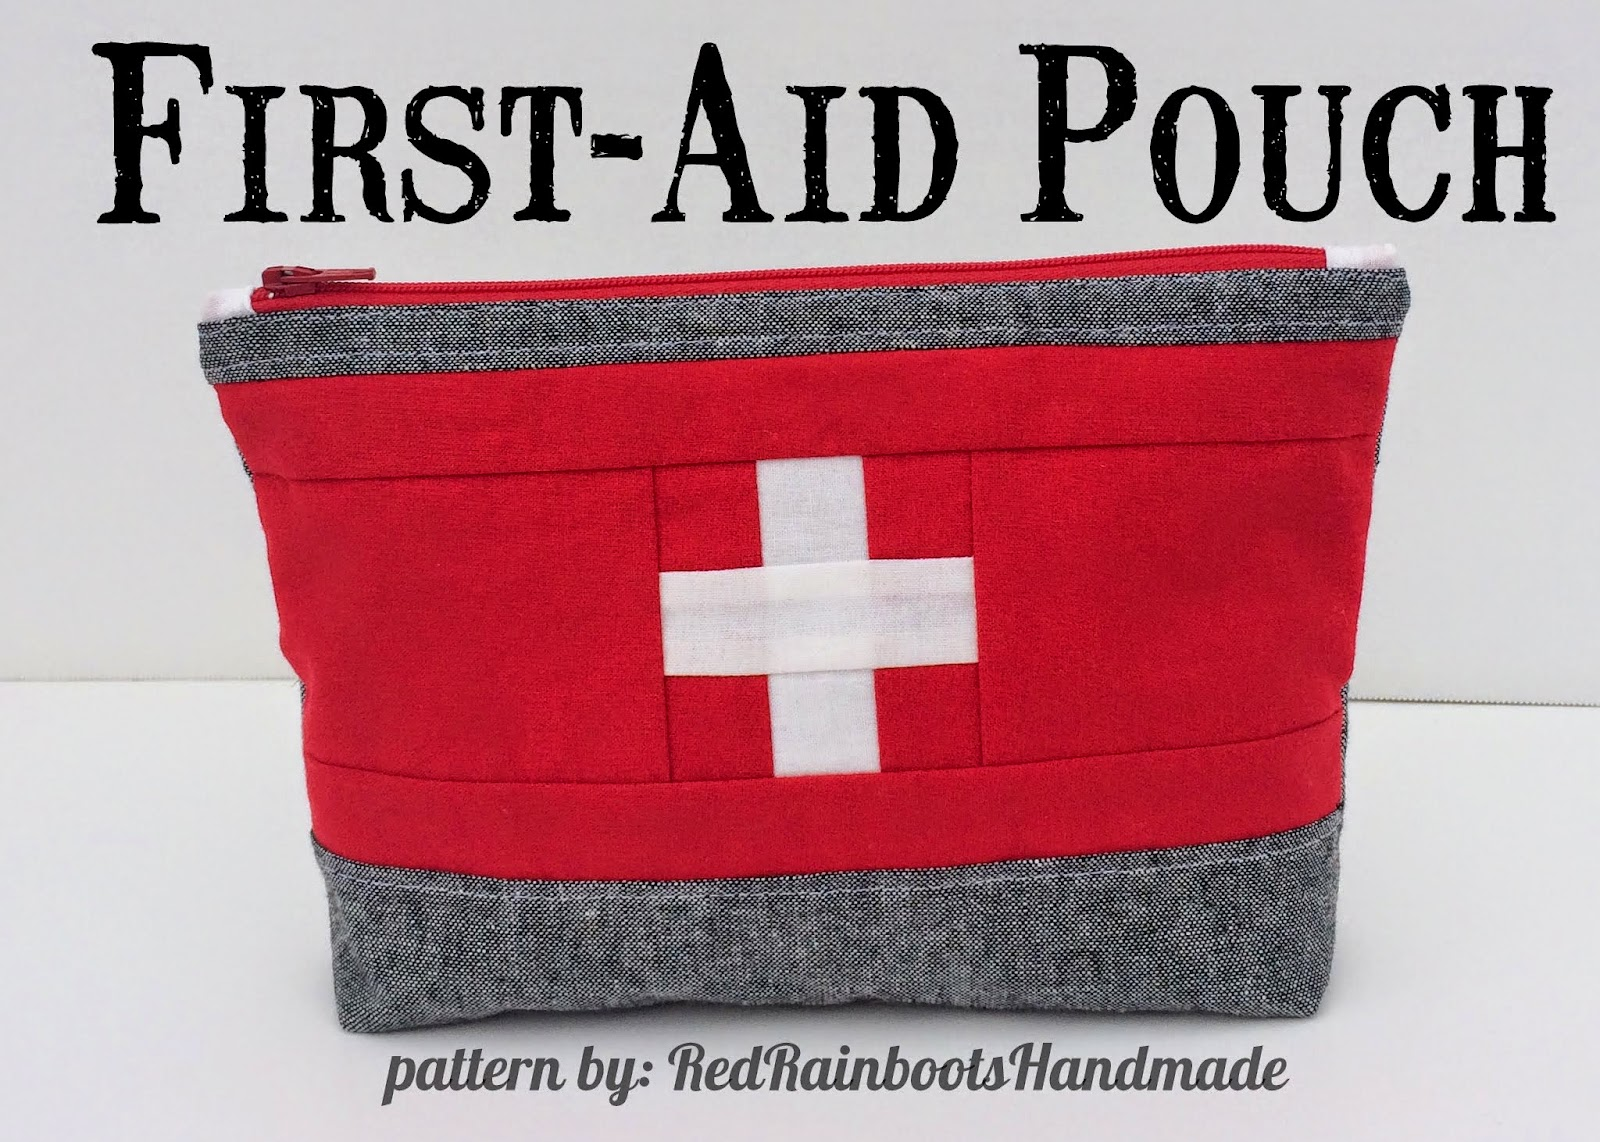 http://redrainbootshandmade.blogspot.com/2015/03/first-aid-pouch-pattern-now-available.html